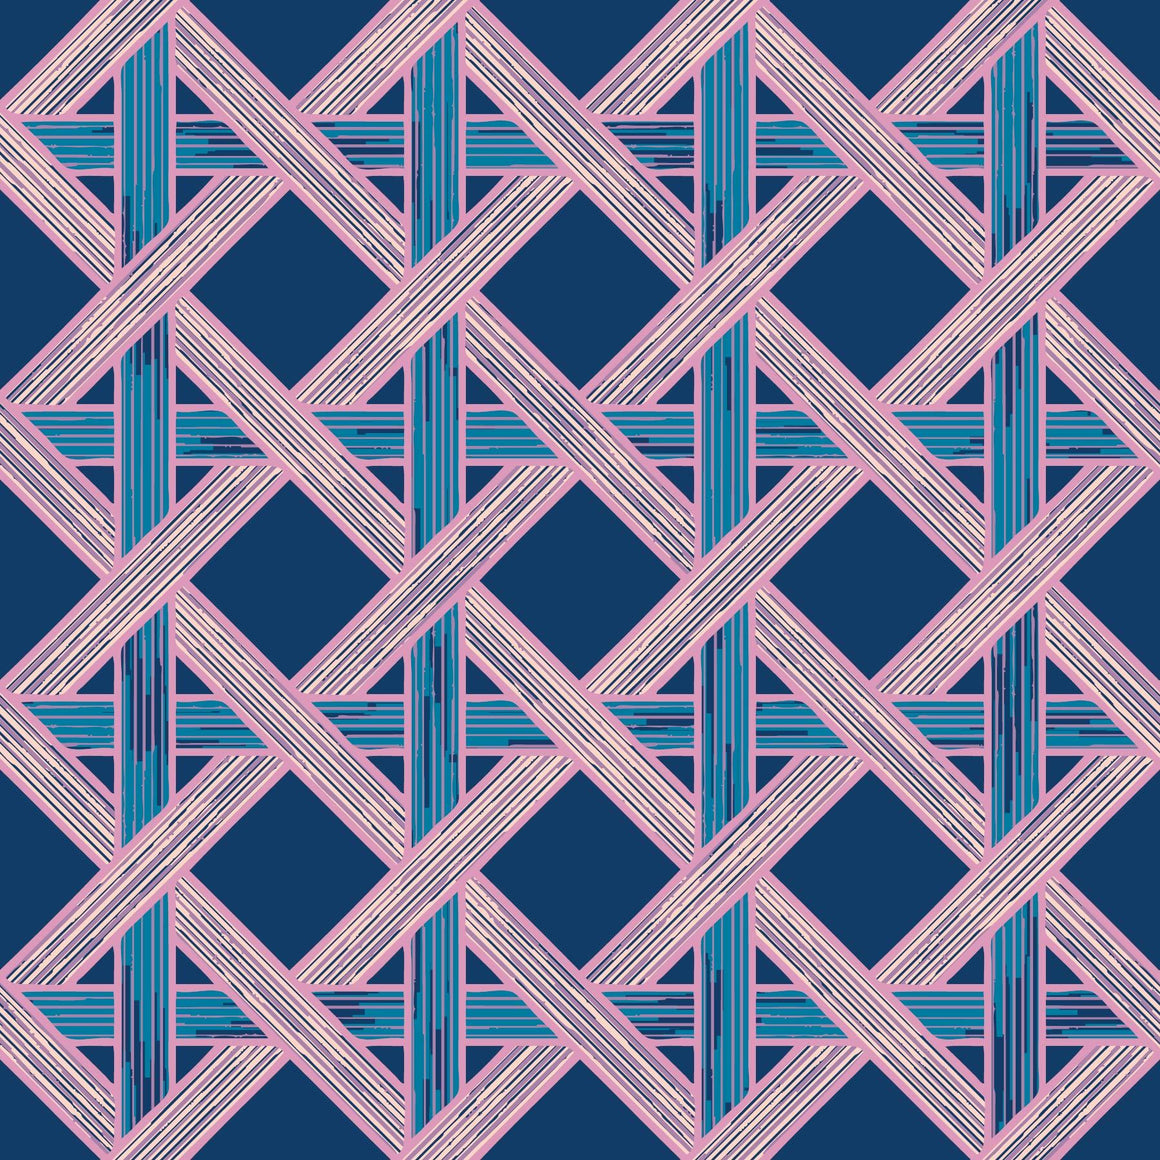 Thick, textured stripes in shades of blue and green weaving together like a basket in vertical, horizaontal, and diagonal directions to create diamond shapes on a navy background.